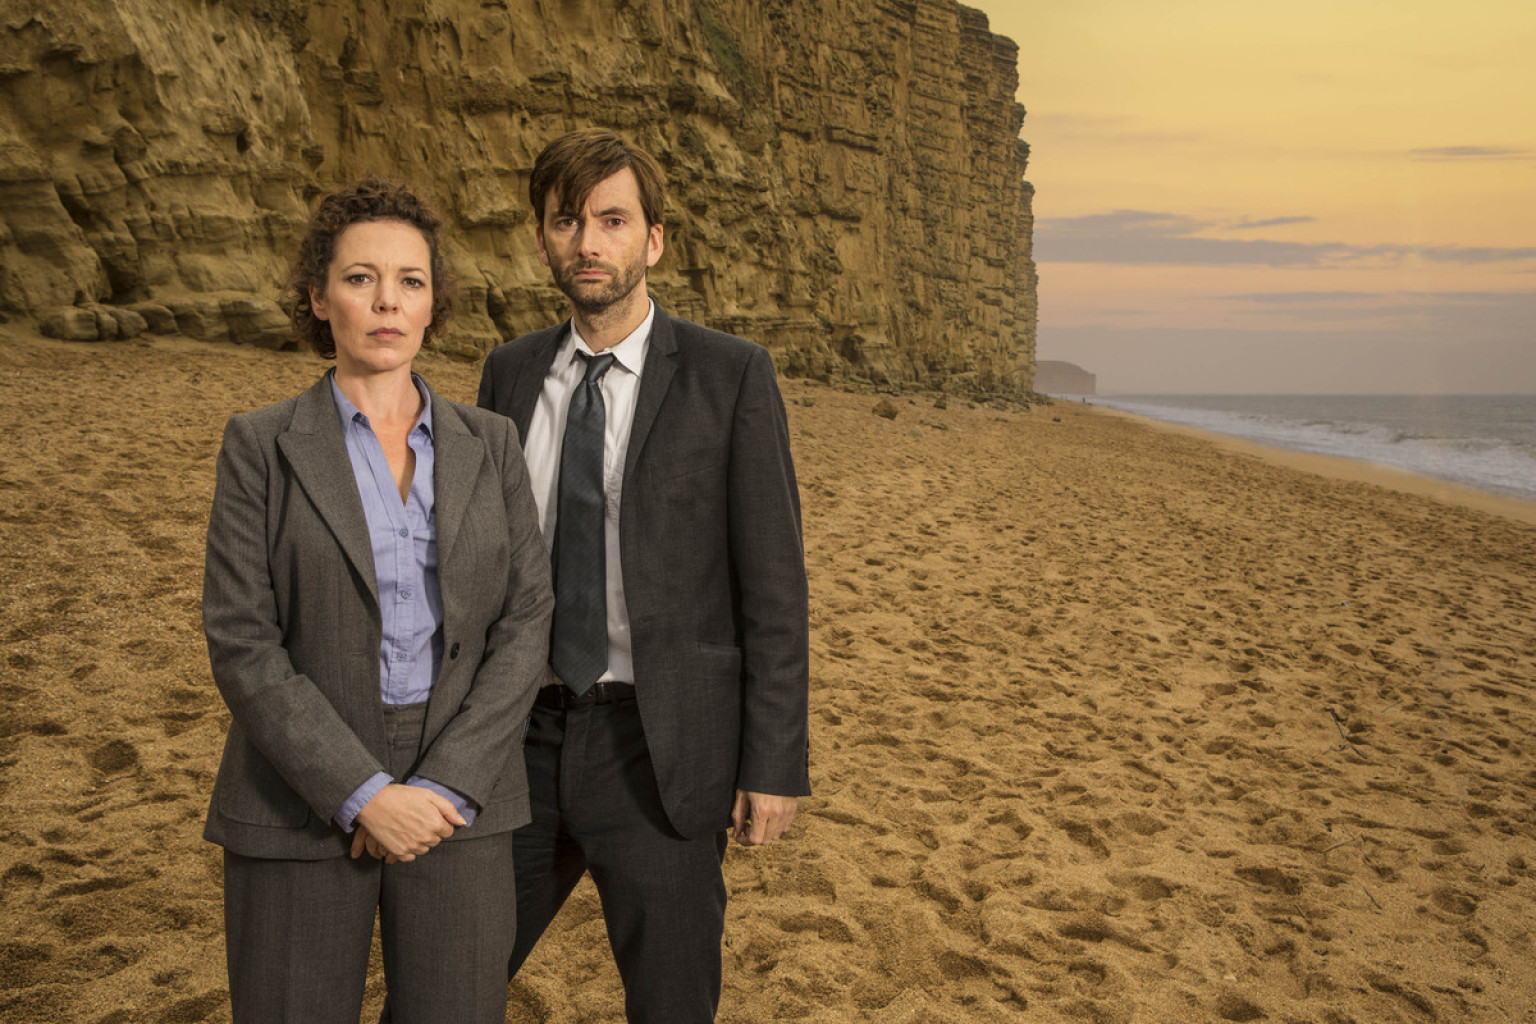 https://i1.wp.com/i.huffpost.com/gen/1290076/thumbs/o-BROADCHURCH-facebook.jpg